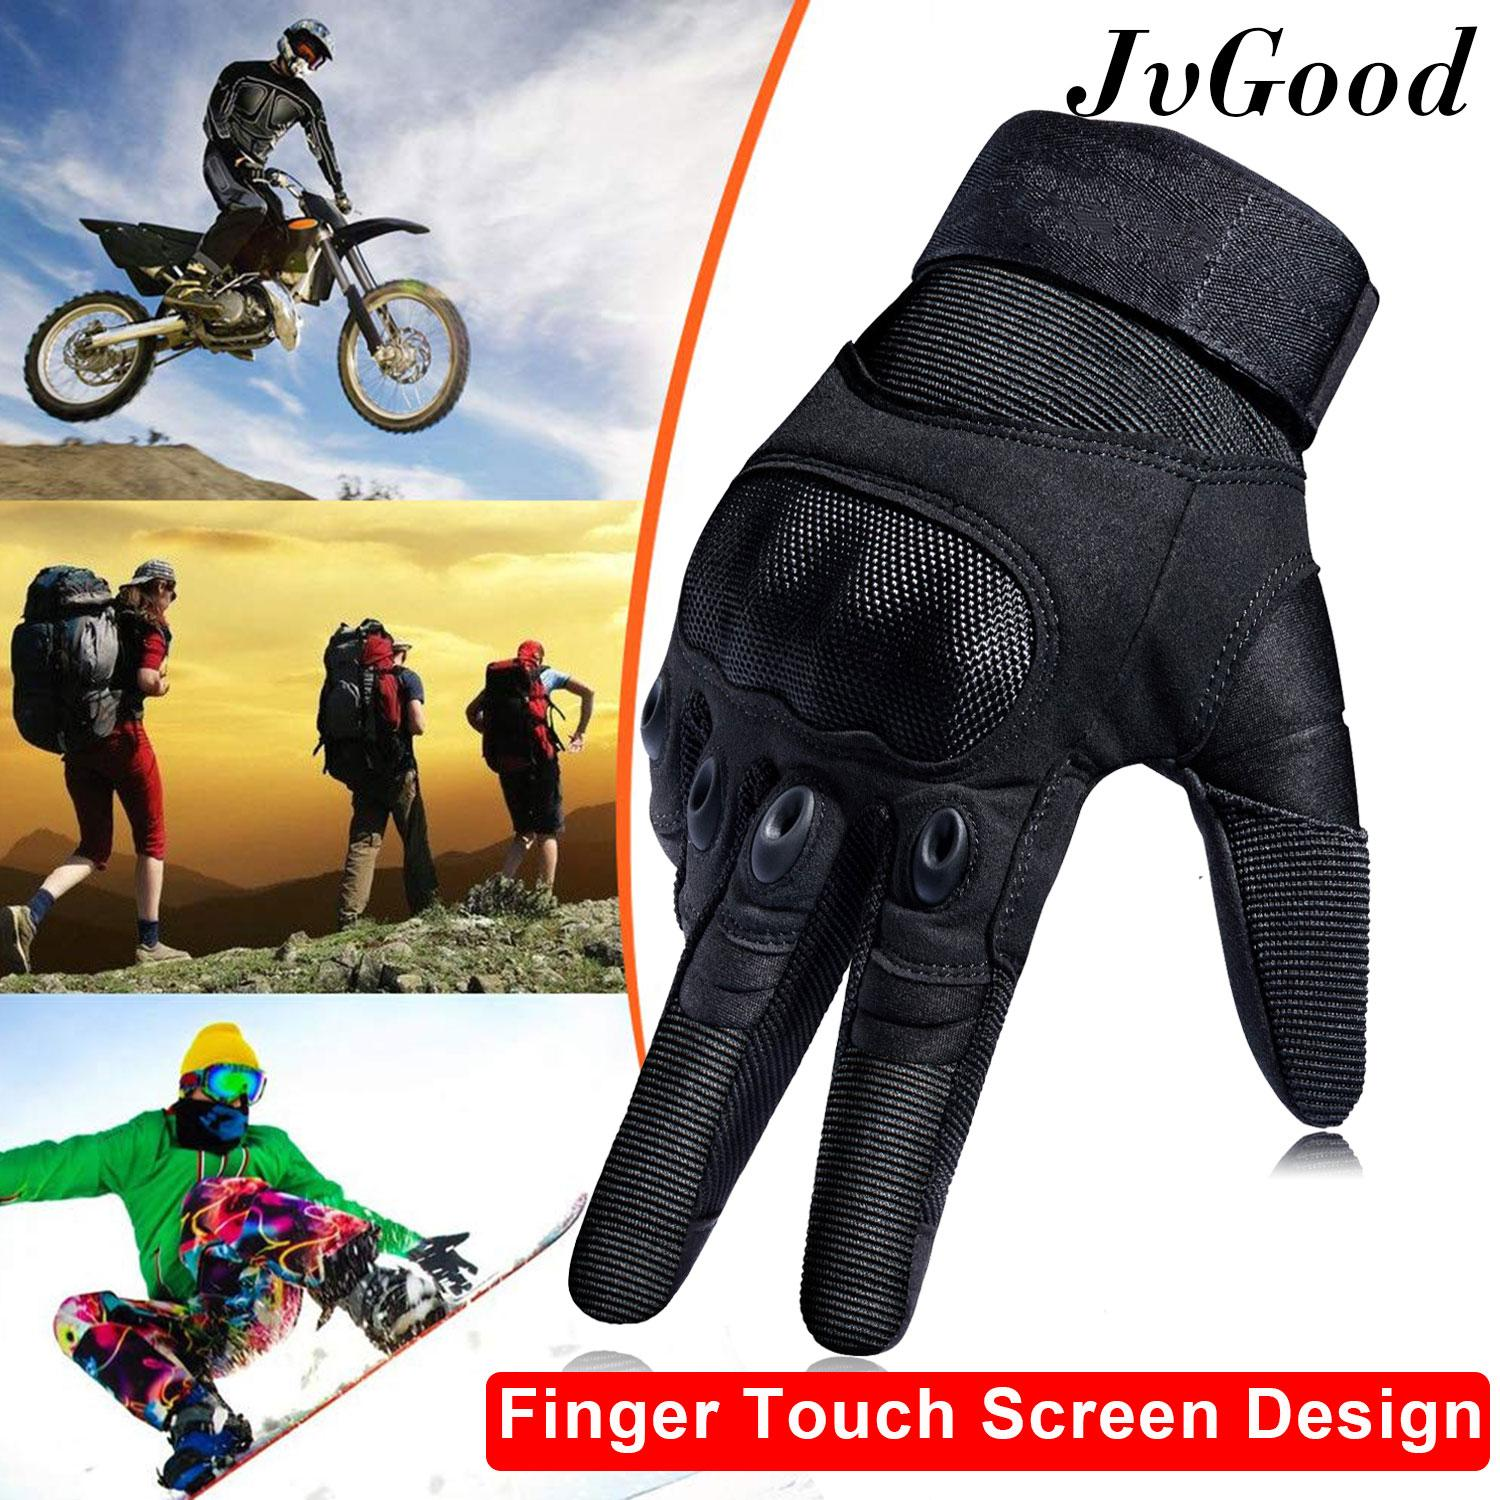 Jvgood ถุงมือเต็มนิ้ว ถุงมือหนัง เรโทร ถุงมือทหาร ถุงมือยิงปืน กันกระแทก Tactical Riding Gloves Men Motorcycle Cycling Gloves Military Outdoor Gloves For Hiking Camping Powersports Airsoft Paintball Full Finger Gloves By Jvgood.